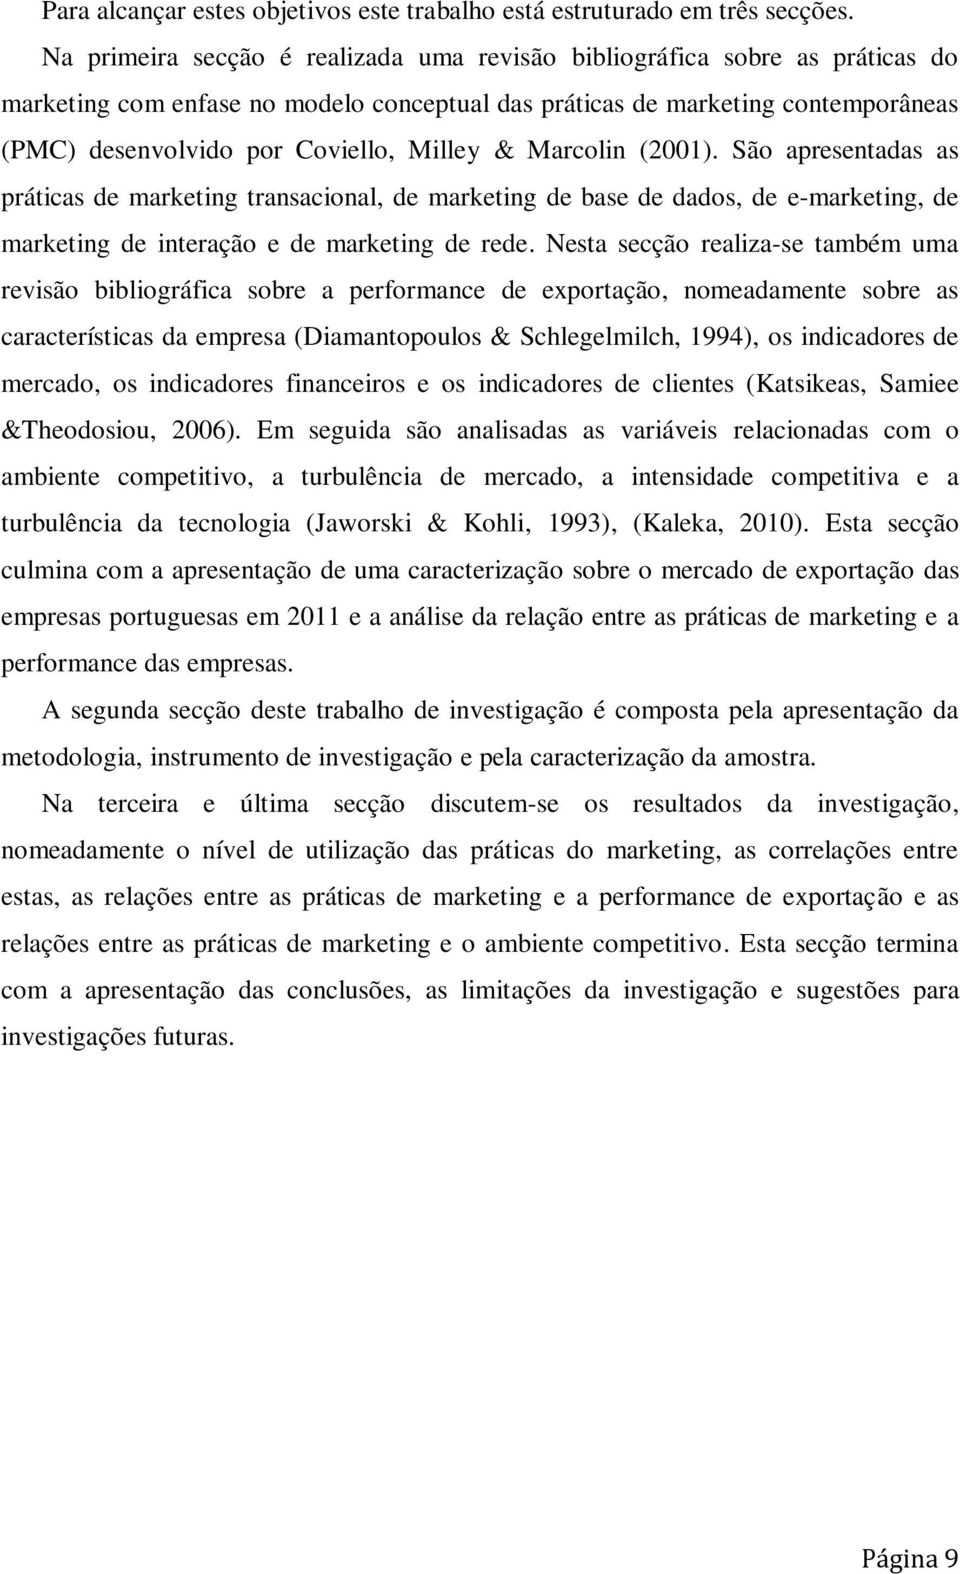 Milley & Marcolin (2001). São apresentadas as práticas de marketing transacional, de marketing de base de dados, de e-marketing, de marketing de interação e de marketing de rede.